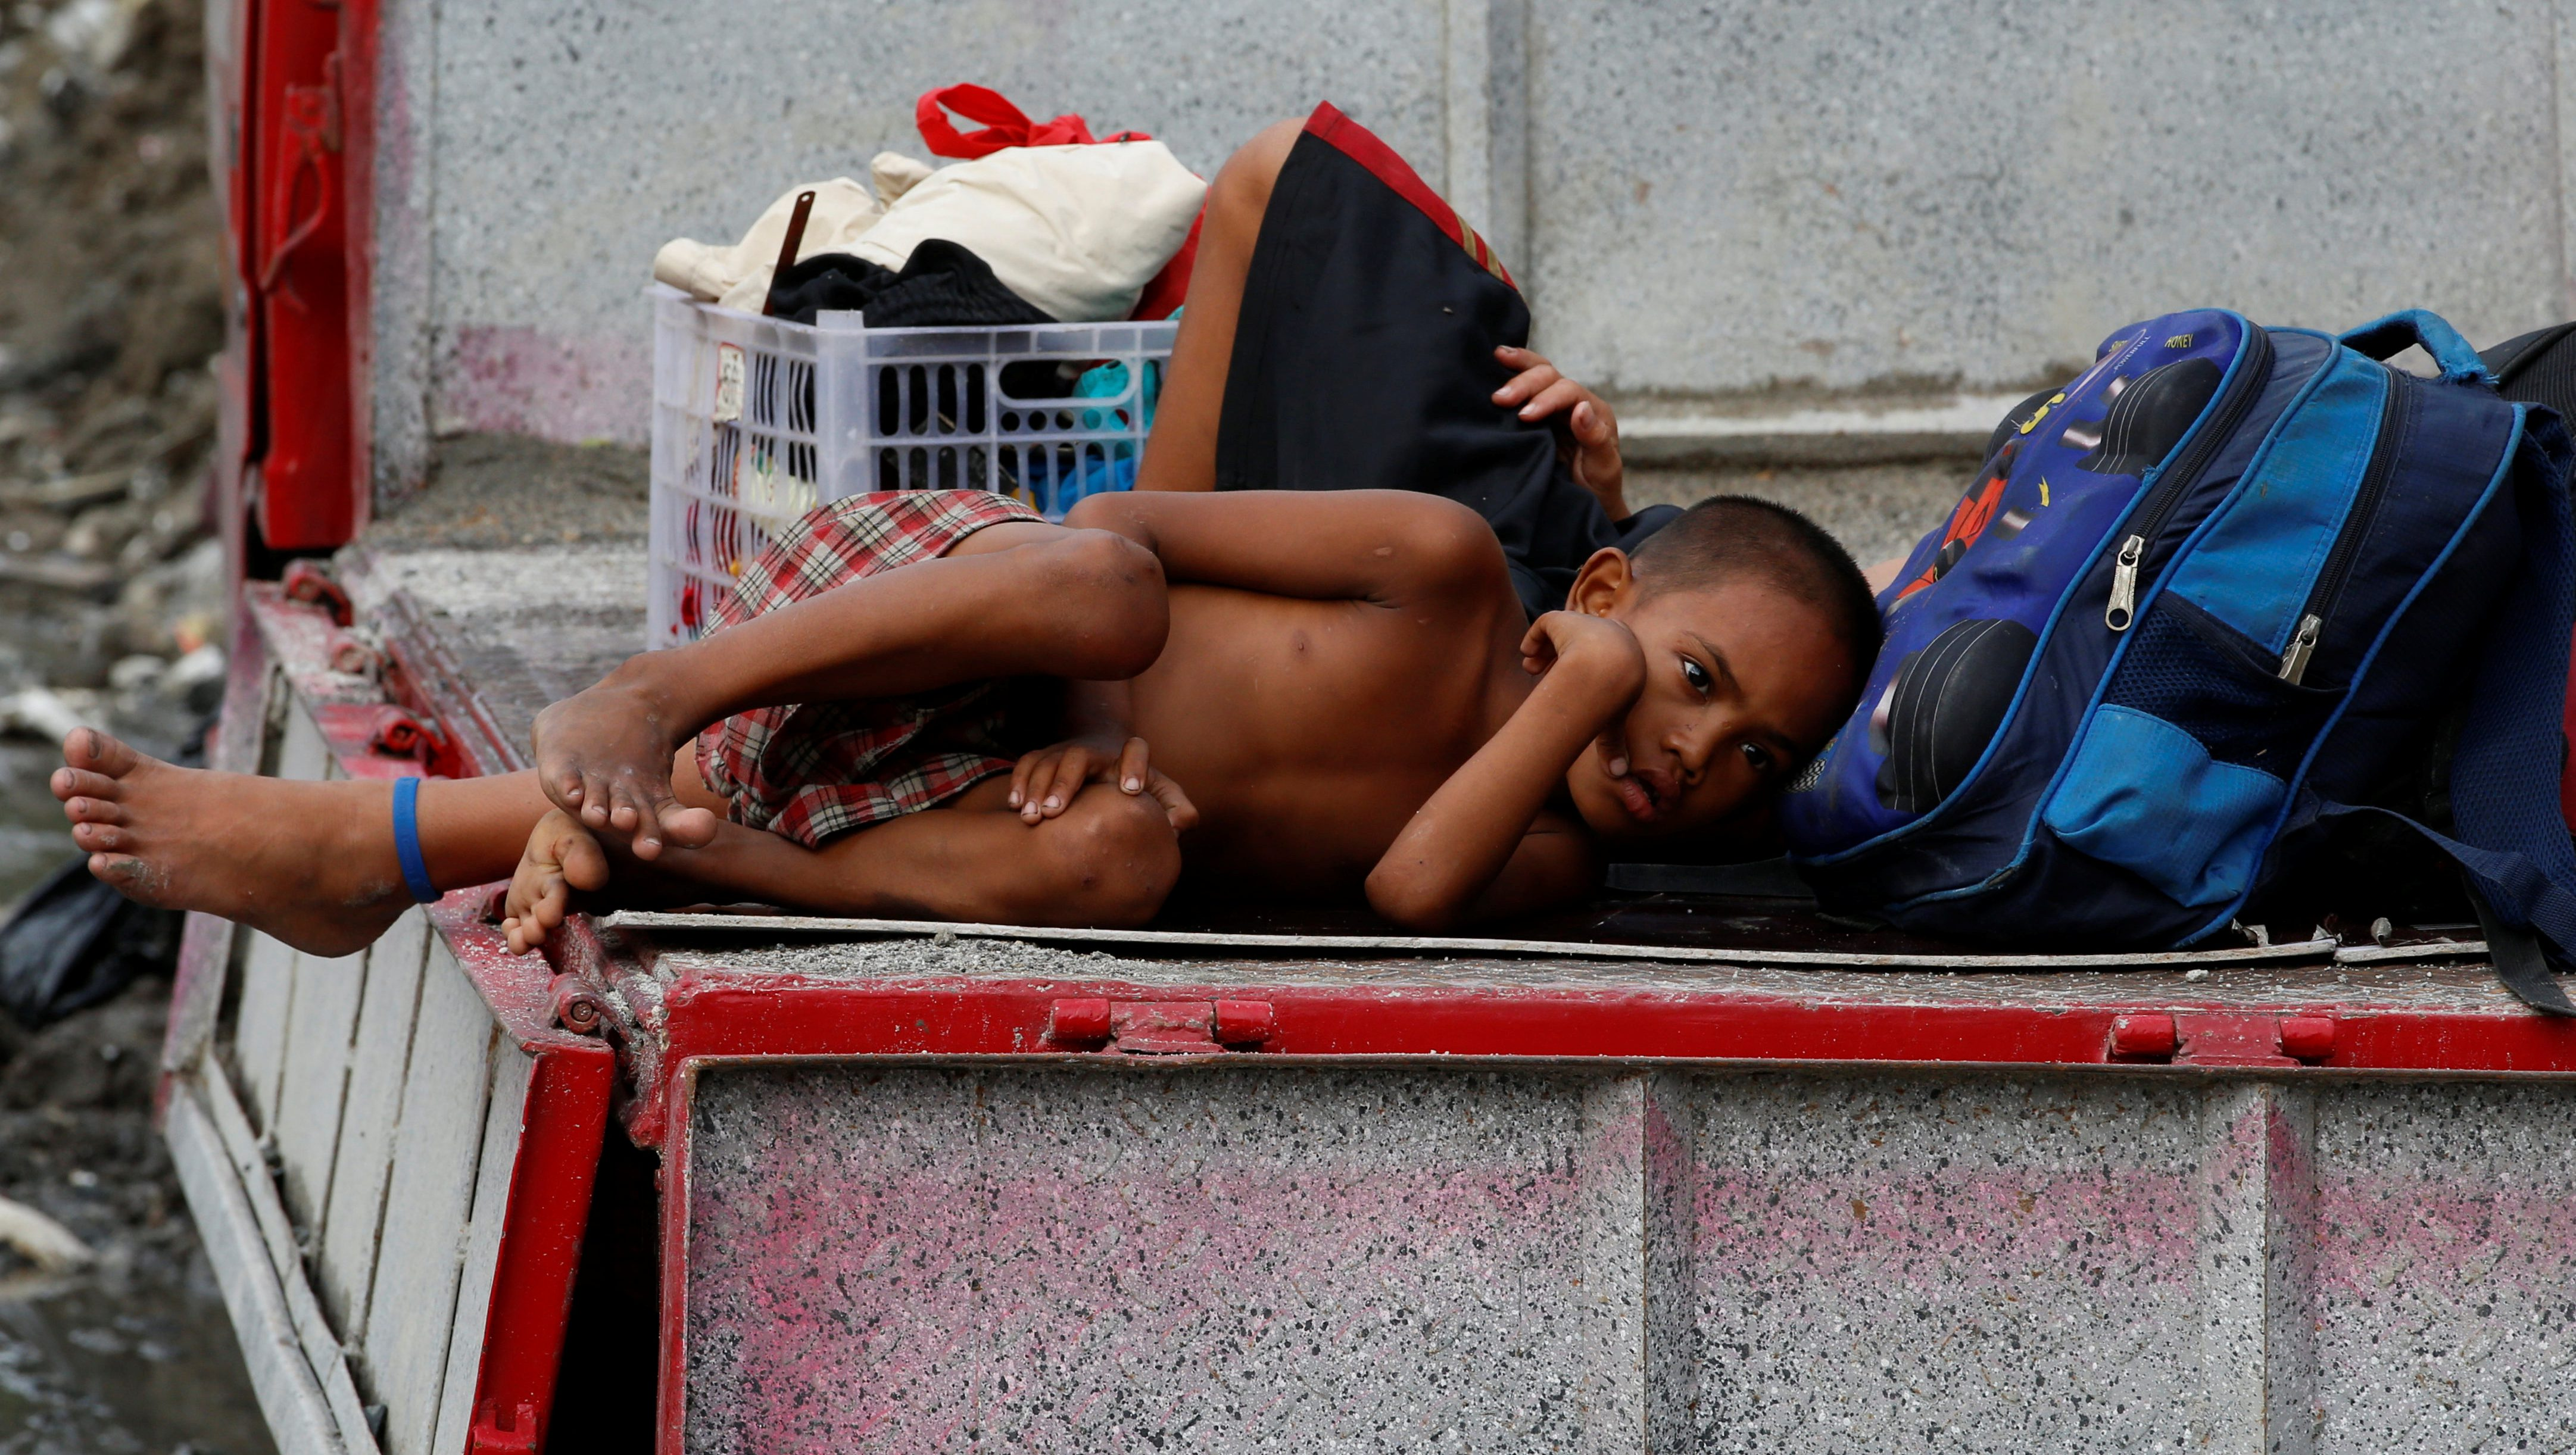 A resident lies on a truck with his belongings after around a dozen homeless people were evicted along a road in Makati, Metro Manila, Philippines August 18, 2016.  REUTERS/Erik De Castro - RTX2LPFE